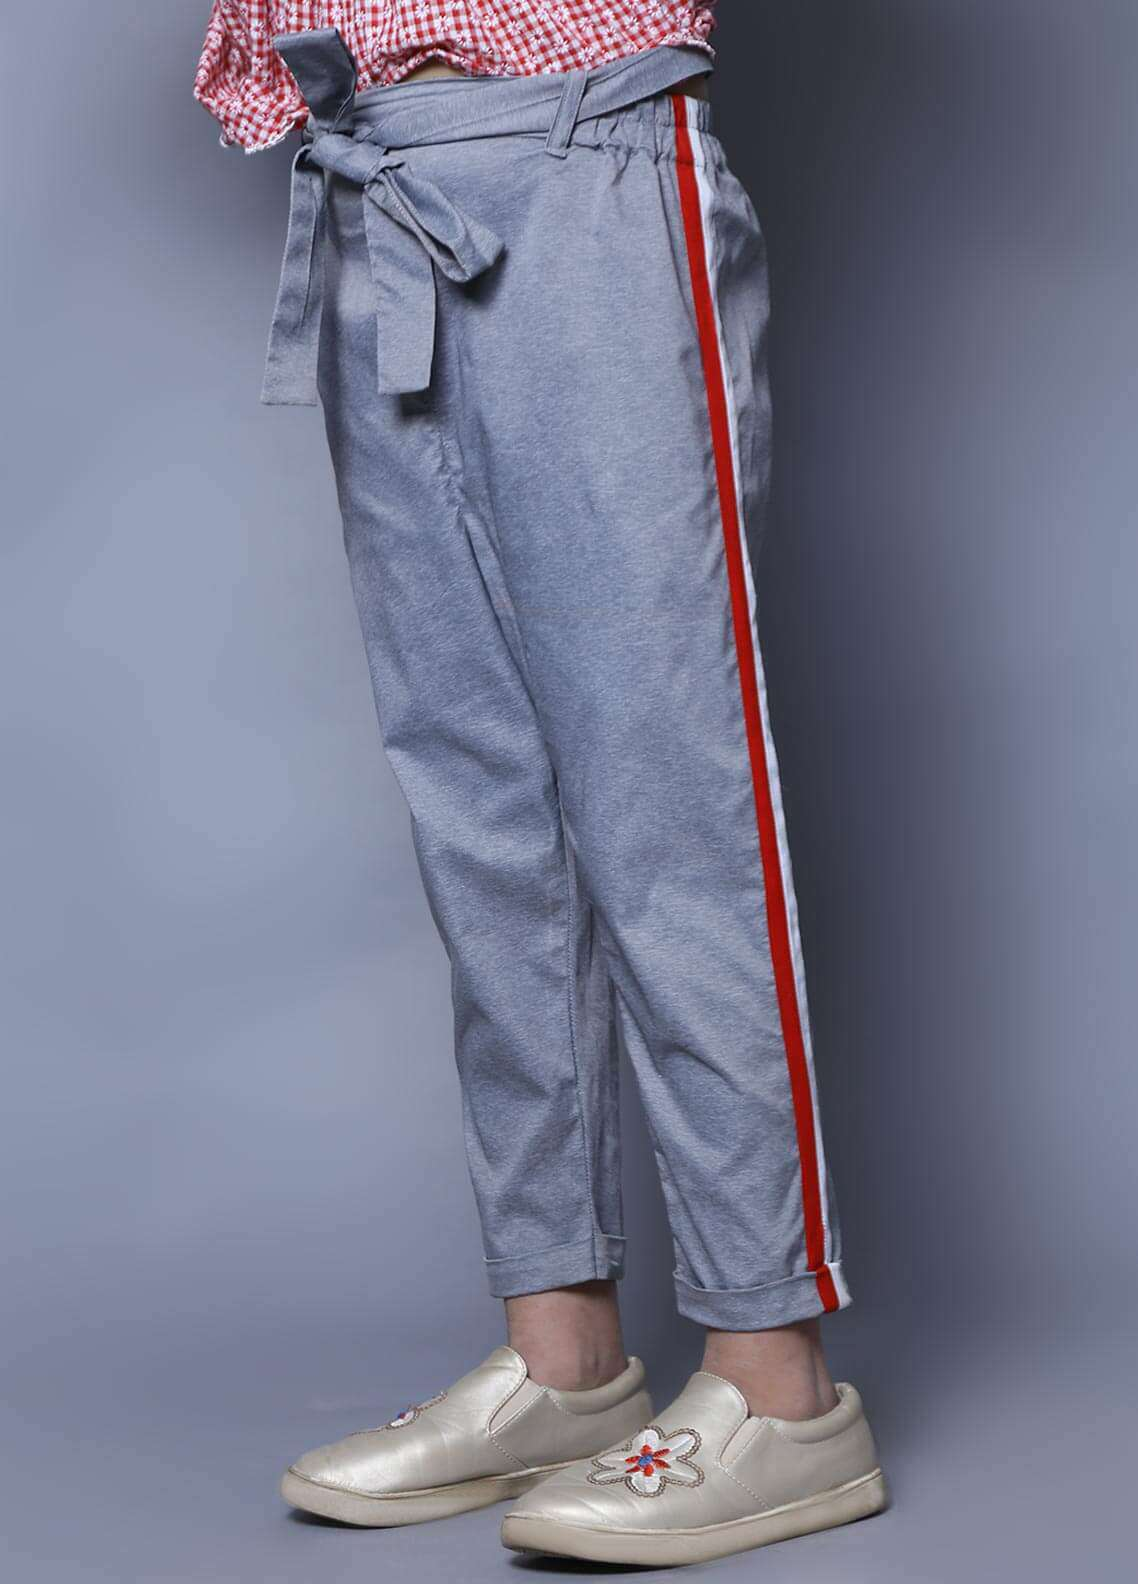 Keshia Cotton Strechable Bow Pants for Girls -  KT-04 Red Striped Pants